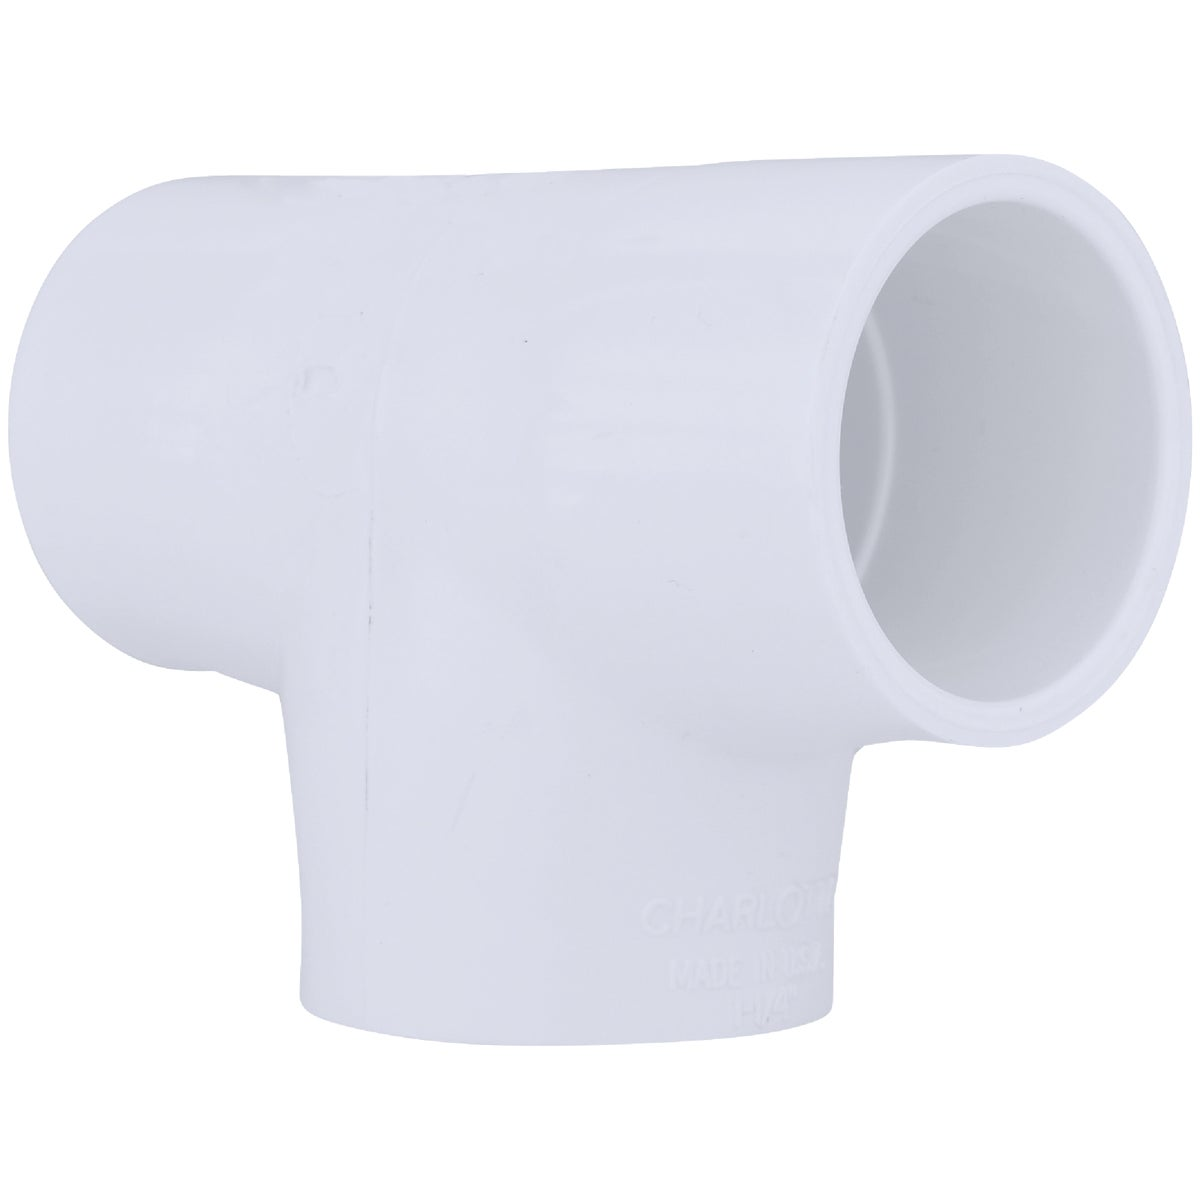 "1-1/4"" SCH40 PVC TEE - 31414 by Genova Inc"